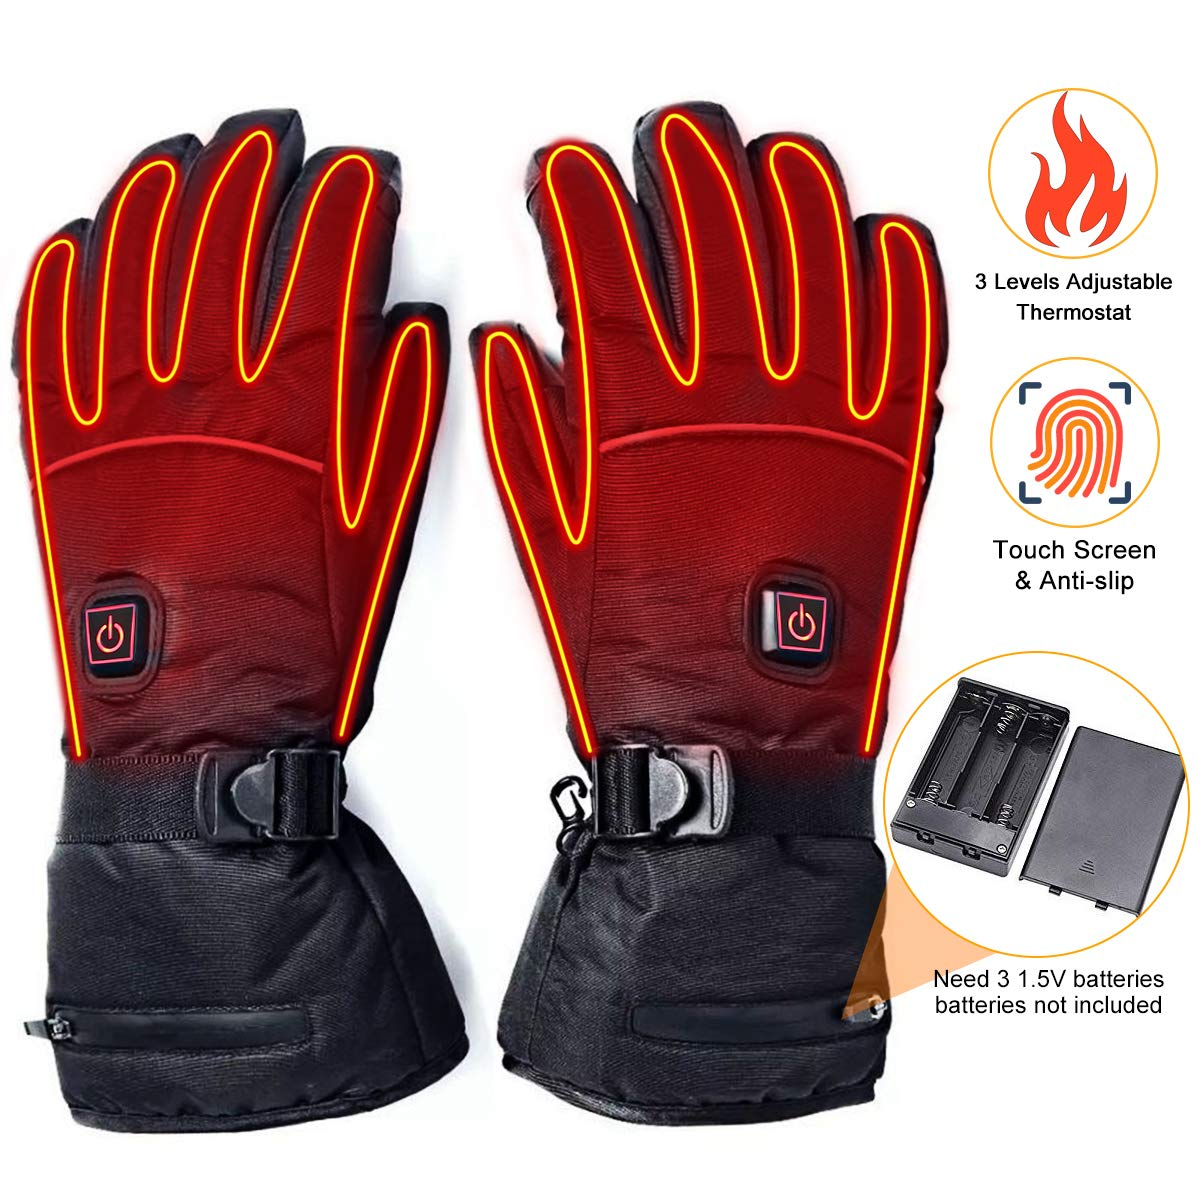 upstartech Heated Gloves for Men Women Rechargeable Upgraded Electric Heated Gloves with 3 Levels Temperature Control Touchscreen Hand Warmer Gloves for Skiing Fishing Hiking Camping (Battery Box)